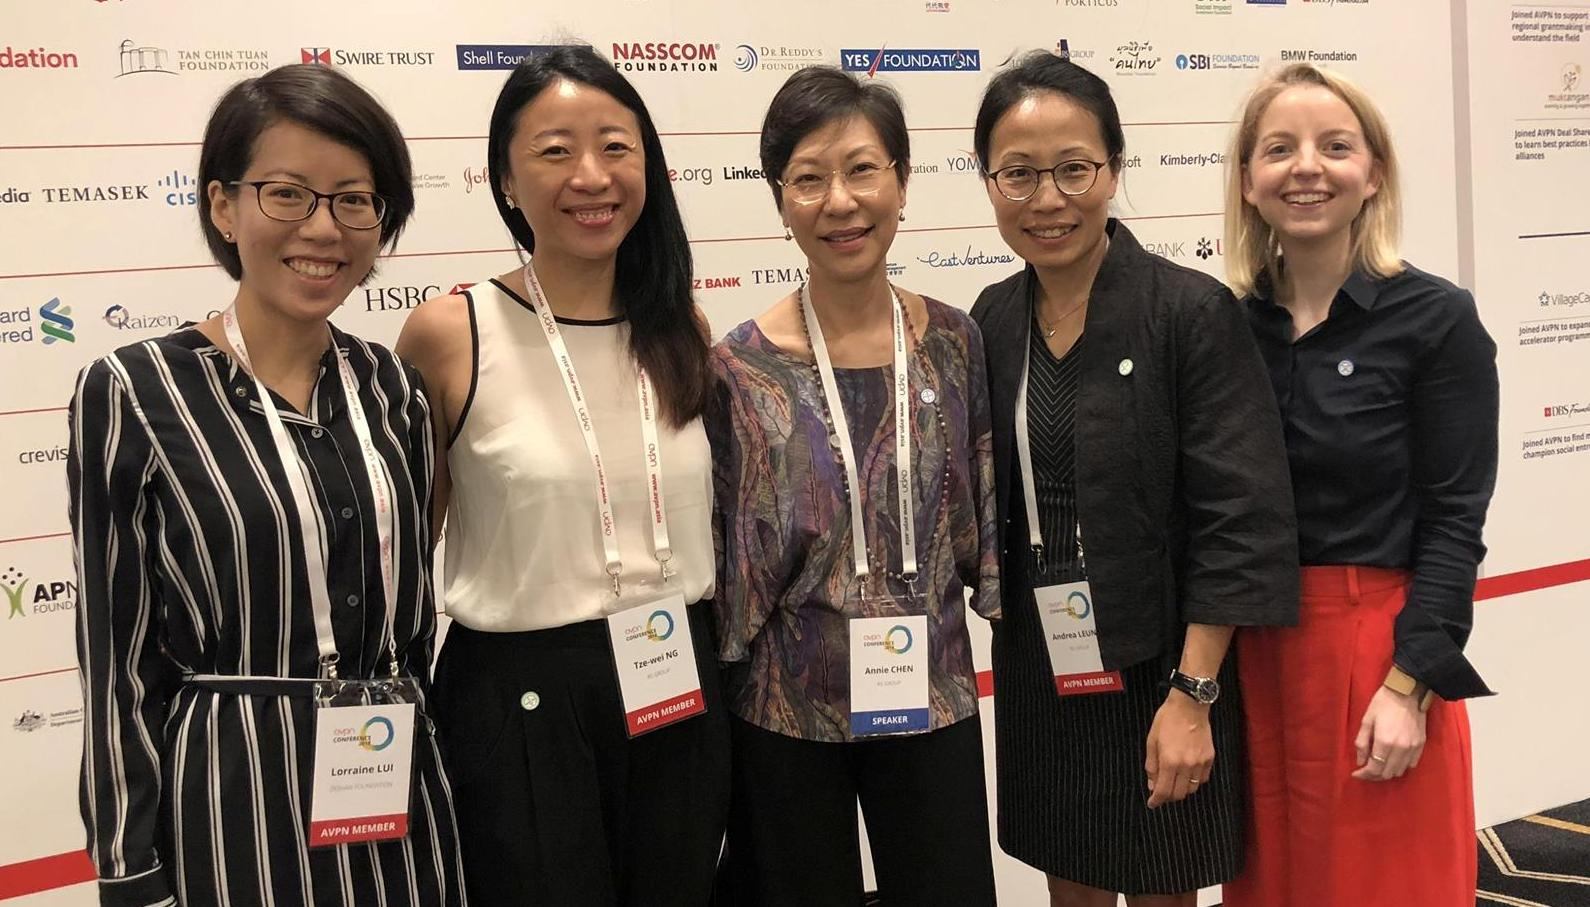 Annie Chen with her colleagues at the AVPN Annual Conference 2018. Photo credit: RS Group